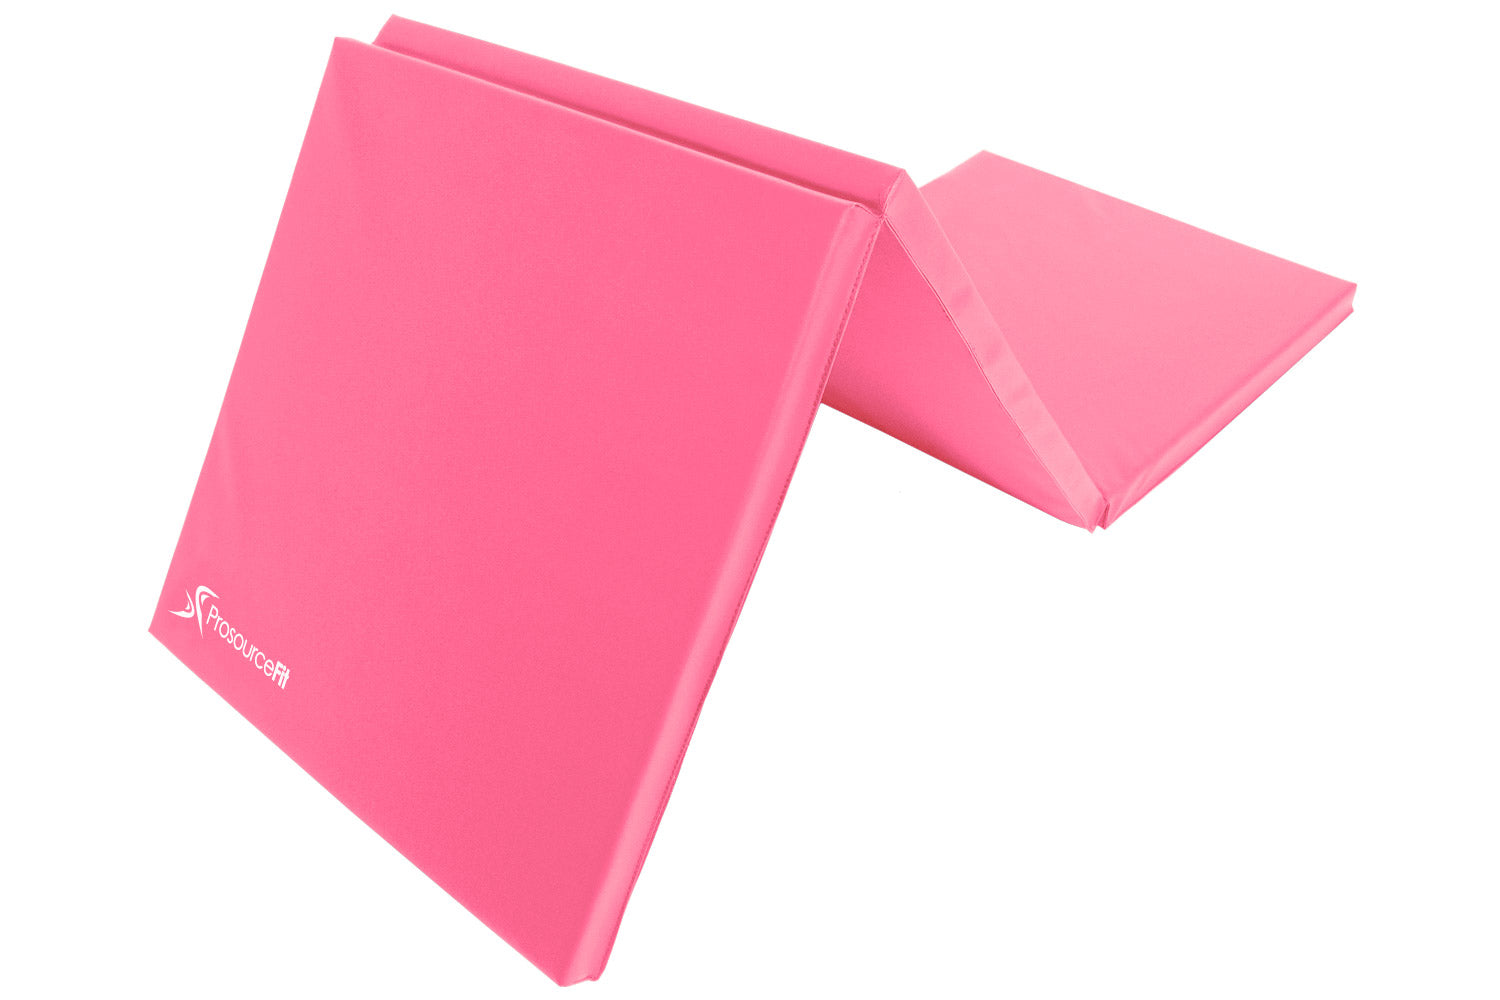 Pink Tri-Fold Folding Exercise Mat 6x2x1.5